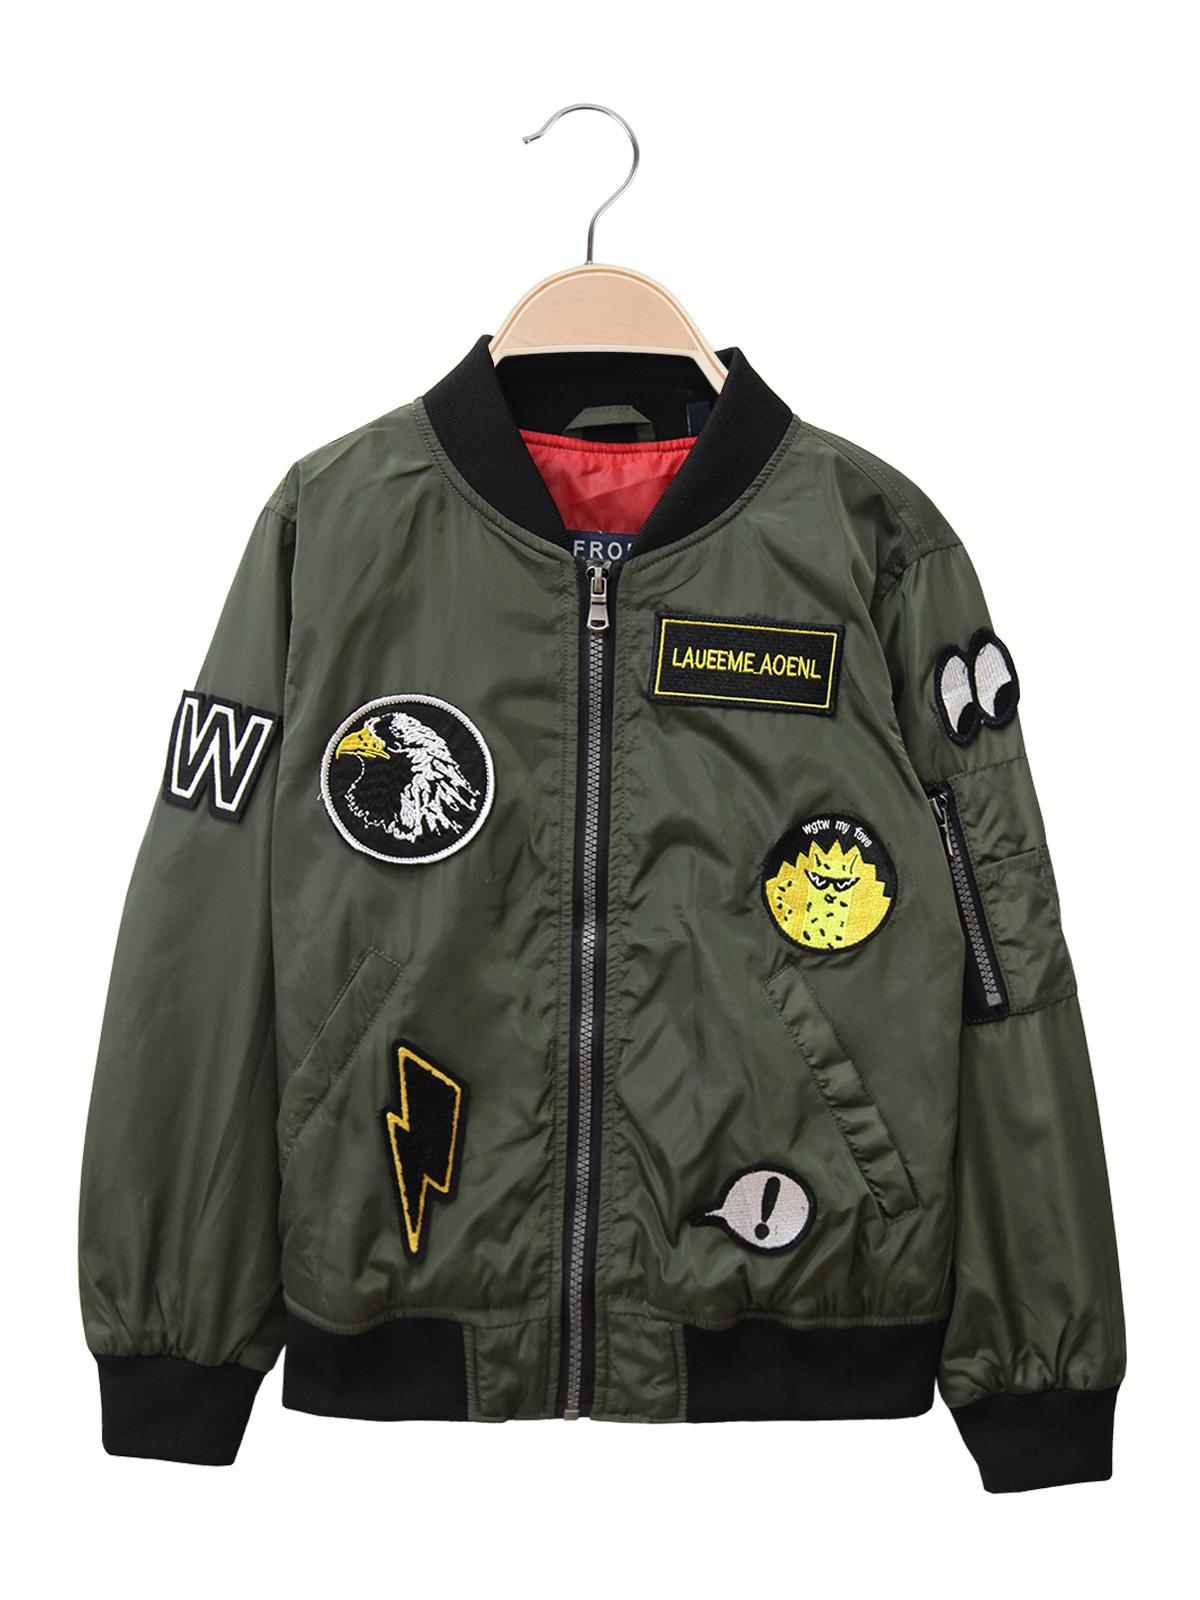 detailed look bfc58 452f9 Bomber verde militare con toppe small gang | MecShopping